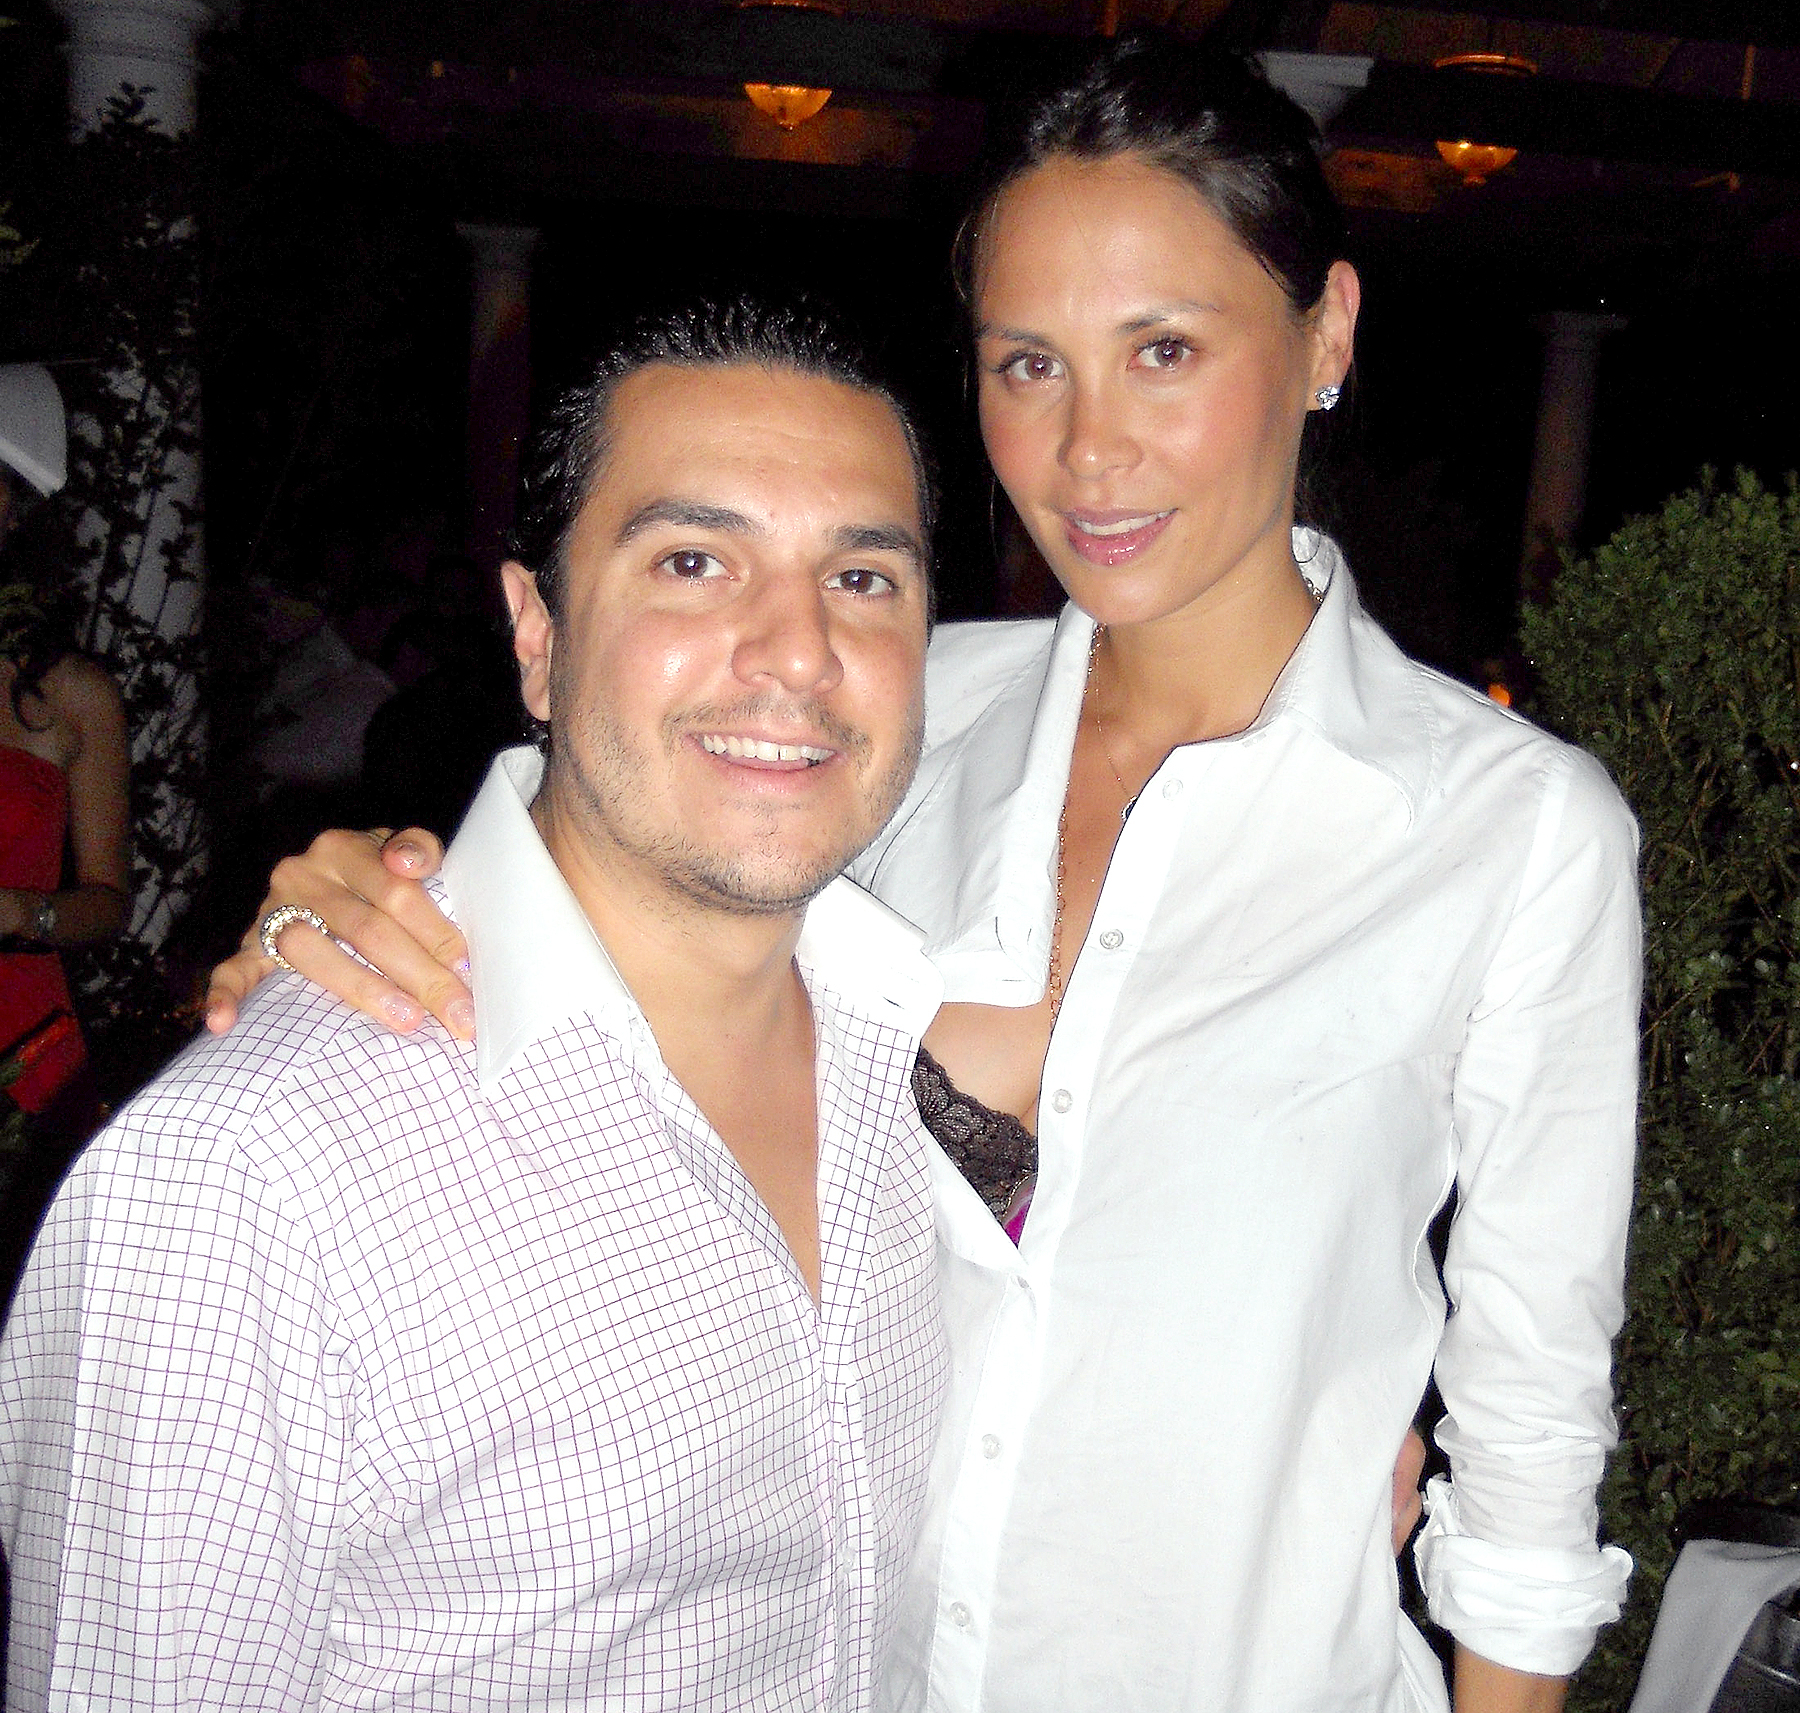 Michael Wainstein and Julianne Wainstein pose circa September 2010 in The Hamptons.